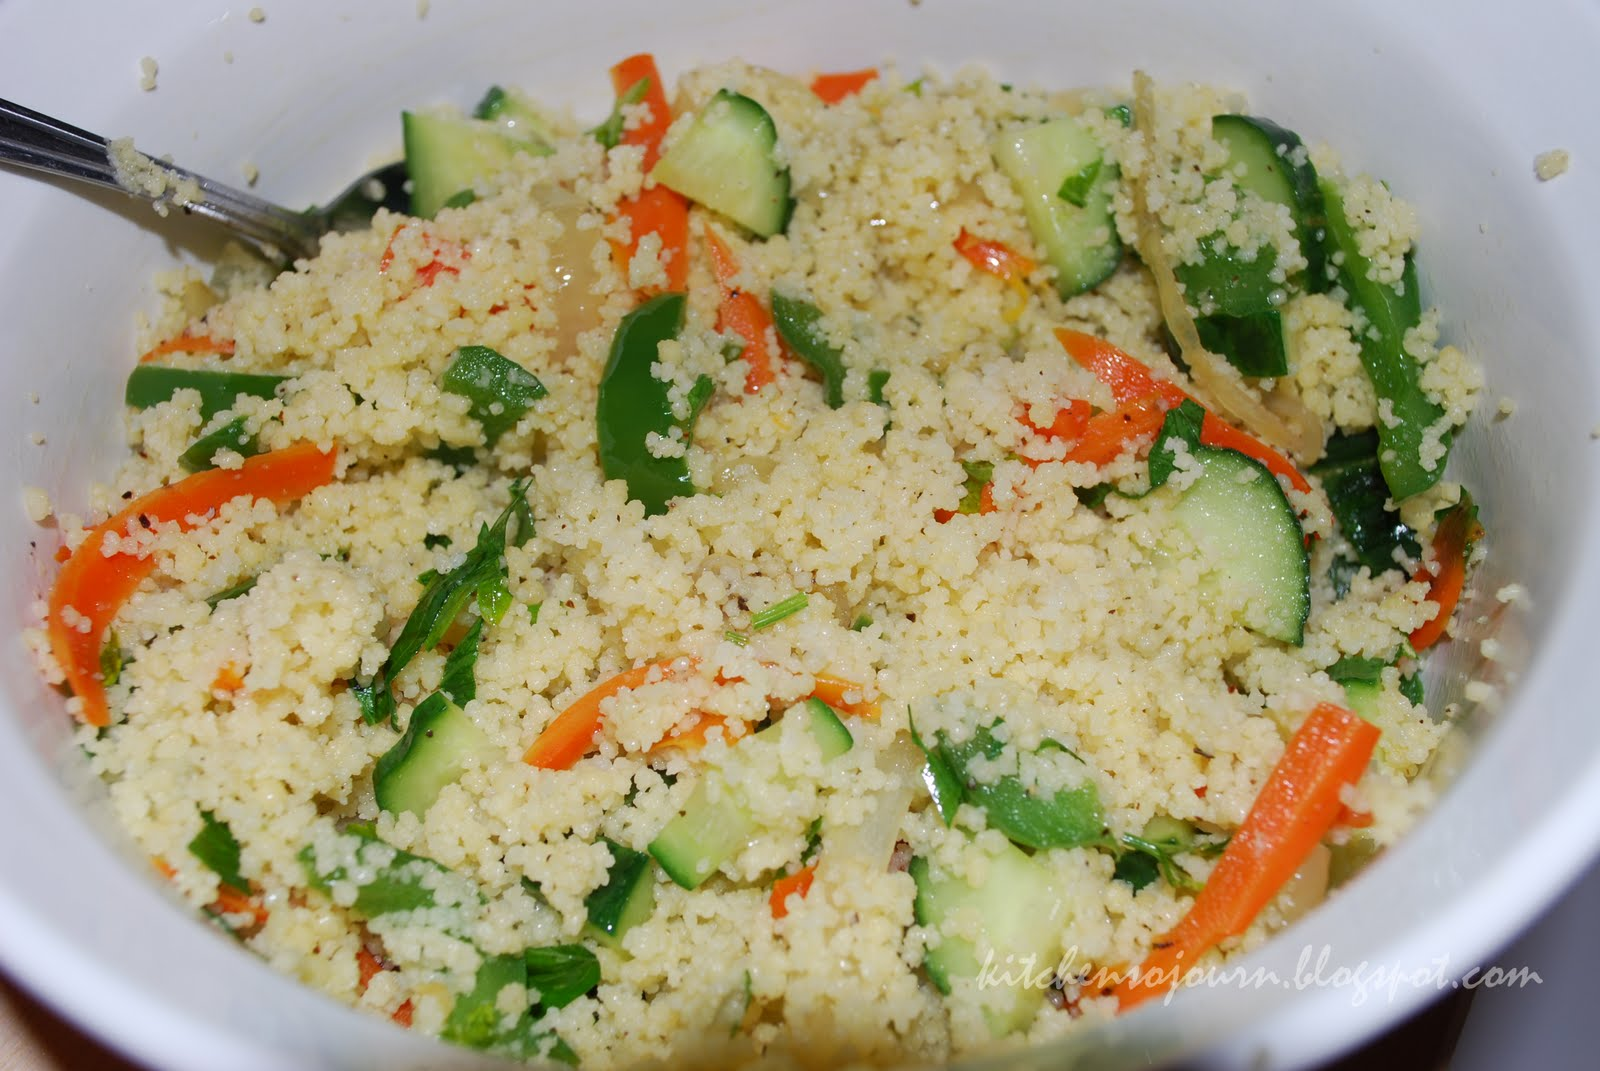 Kitchen Sojourn: Mediterranean Couscous Salad